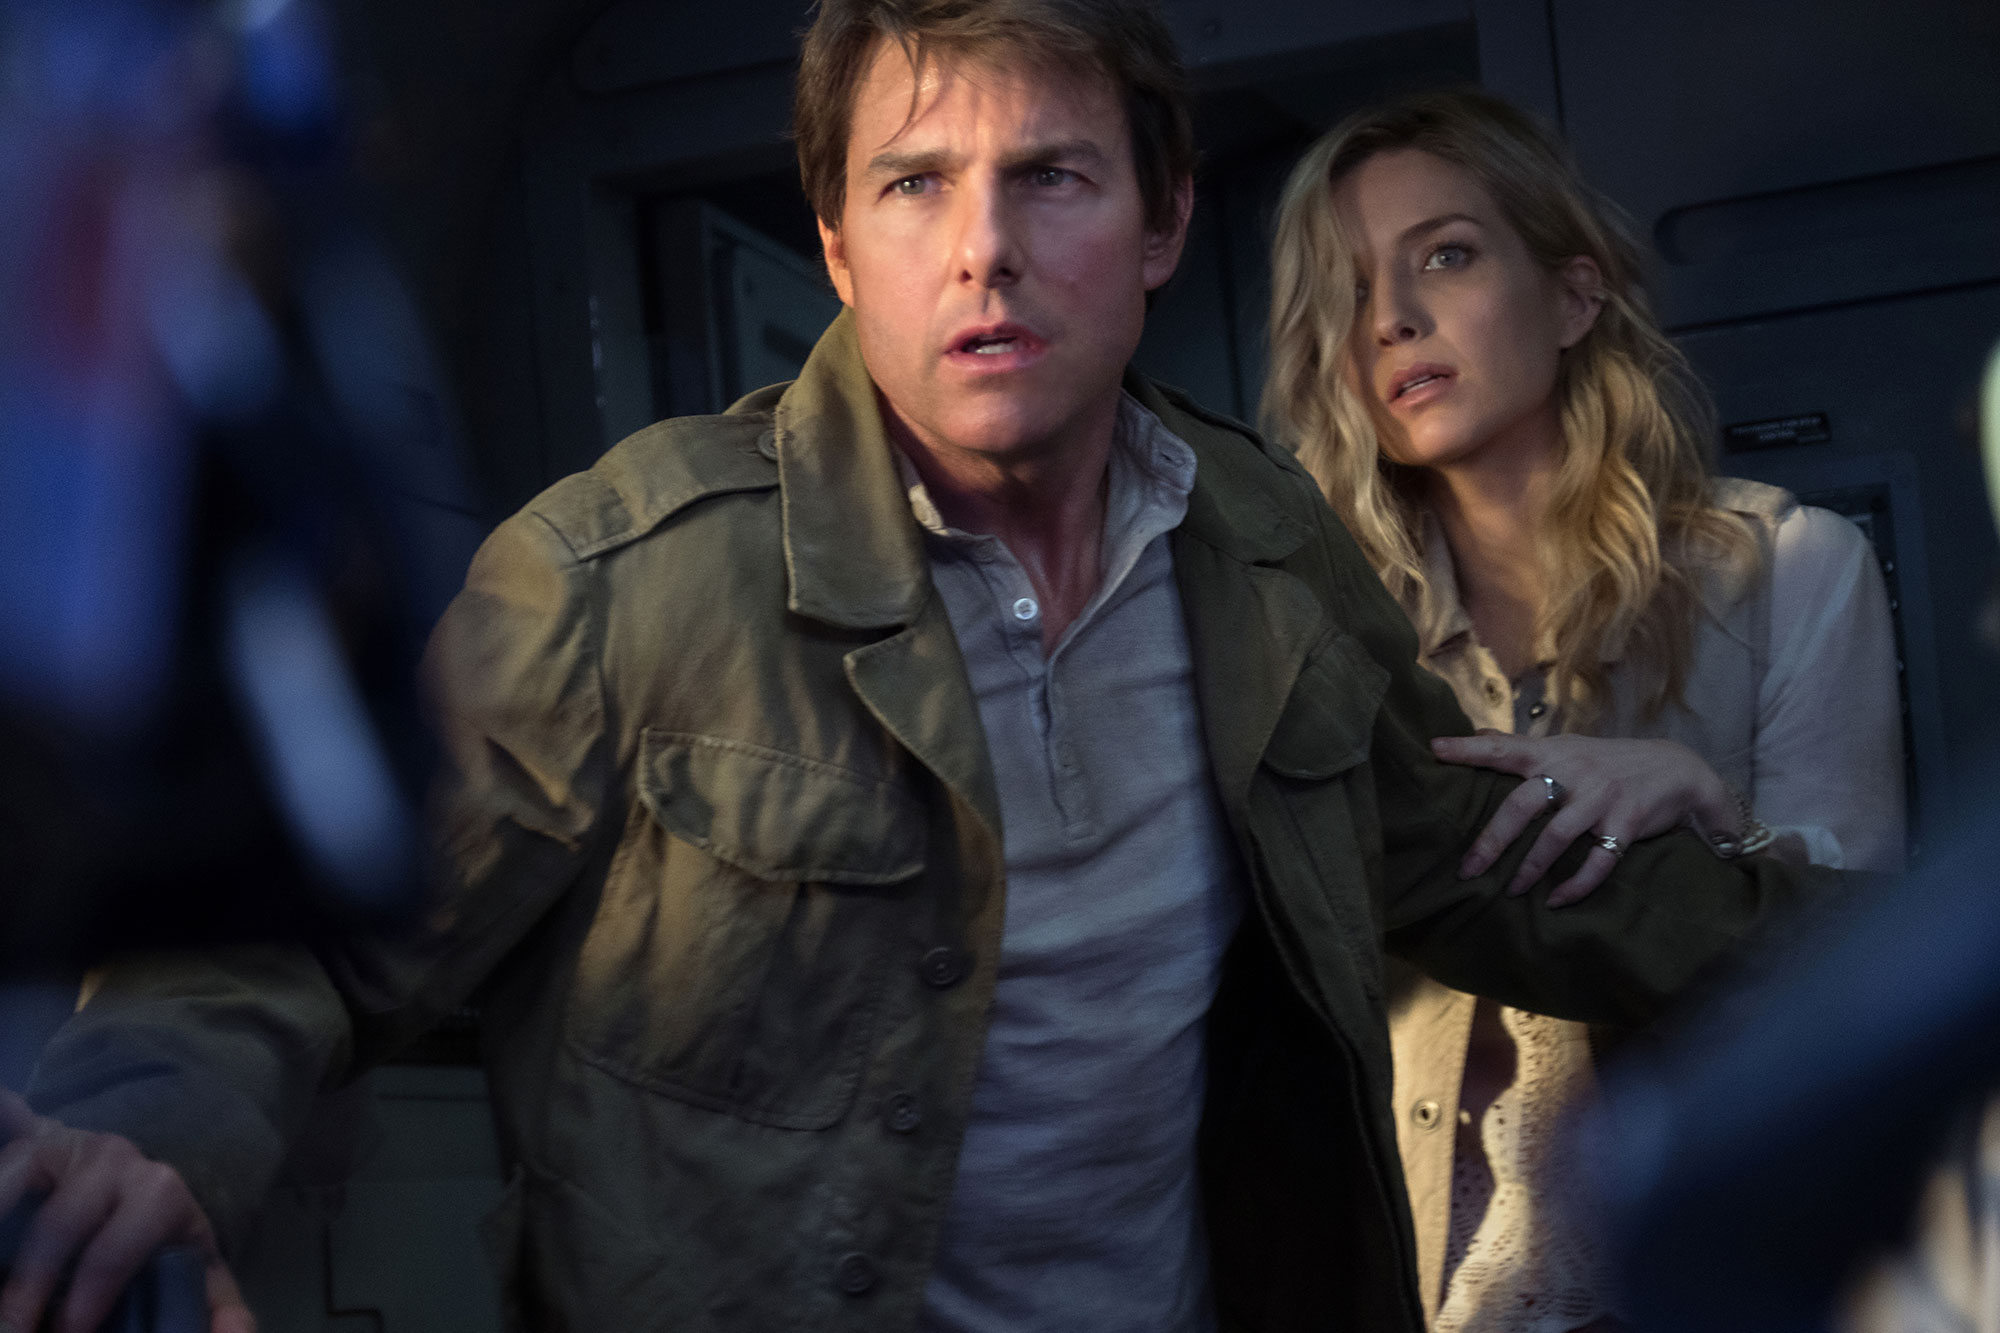 Tom Cruise ignites a new franchise with The Mummy